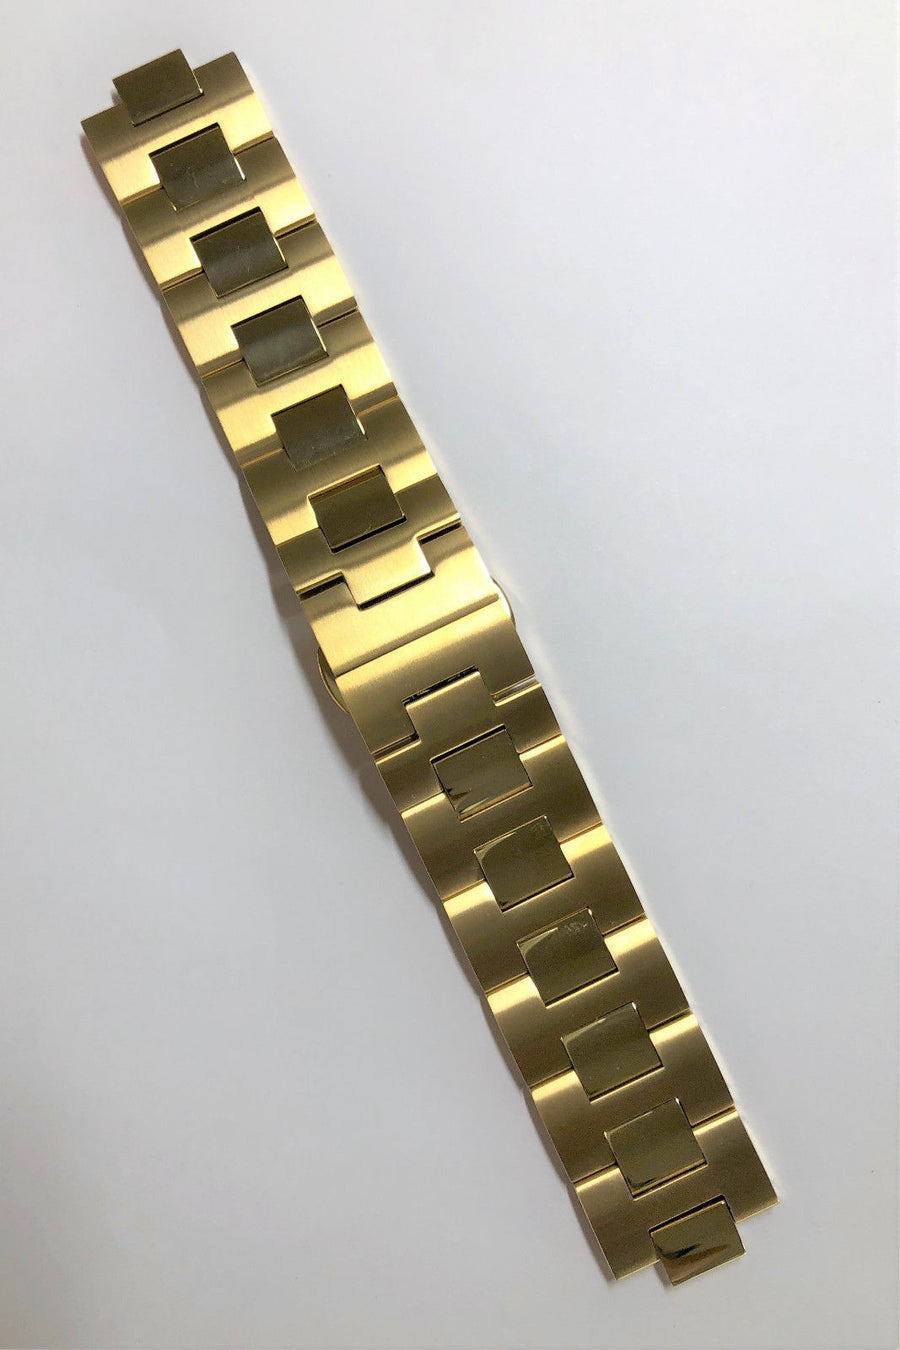 Movado BOLD 22mm MB-01-1-34-6156 Yellow Gold Metal Watch Band